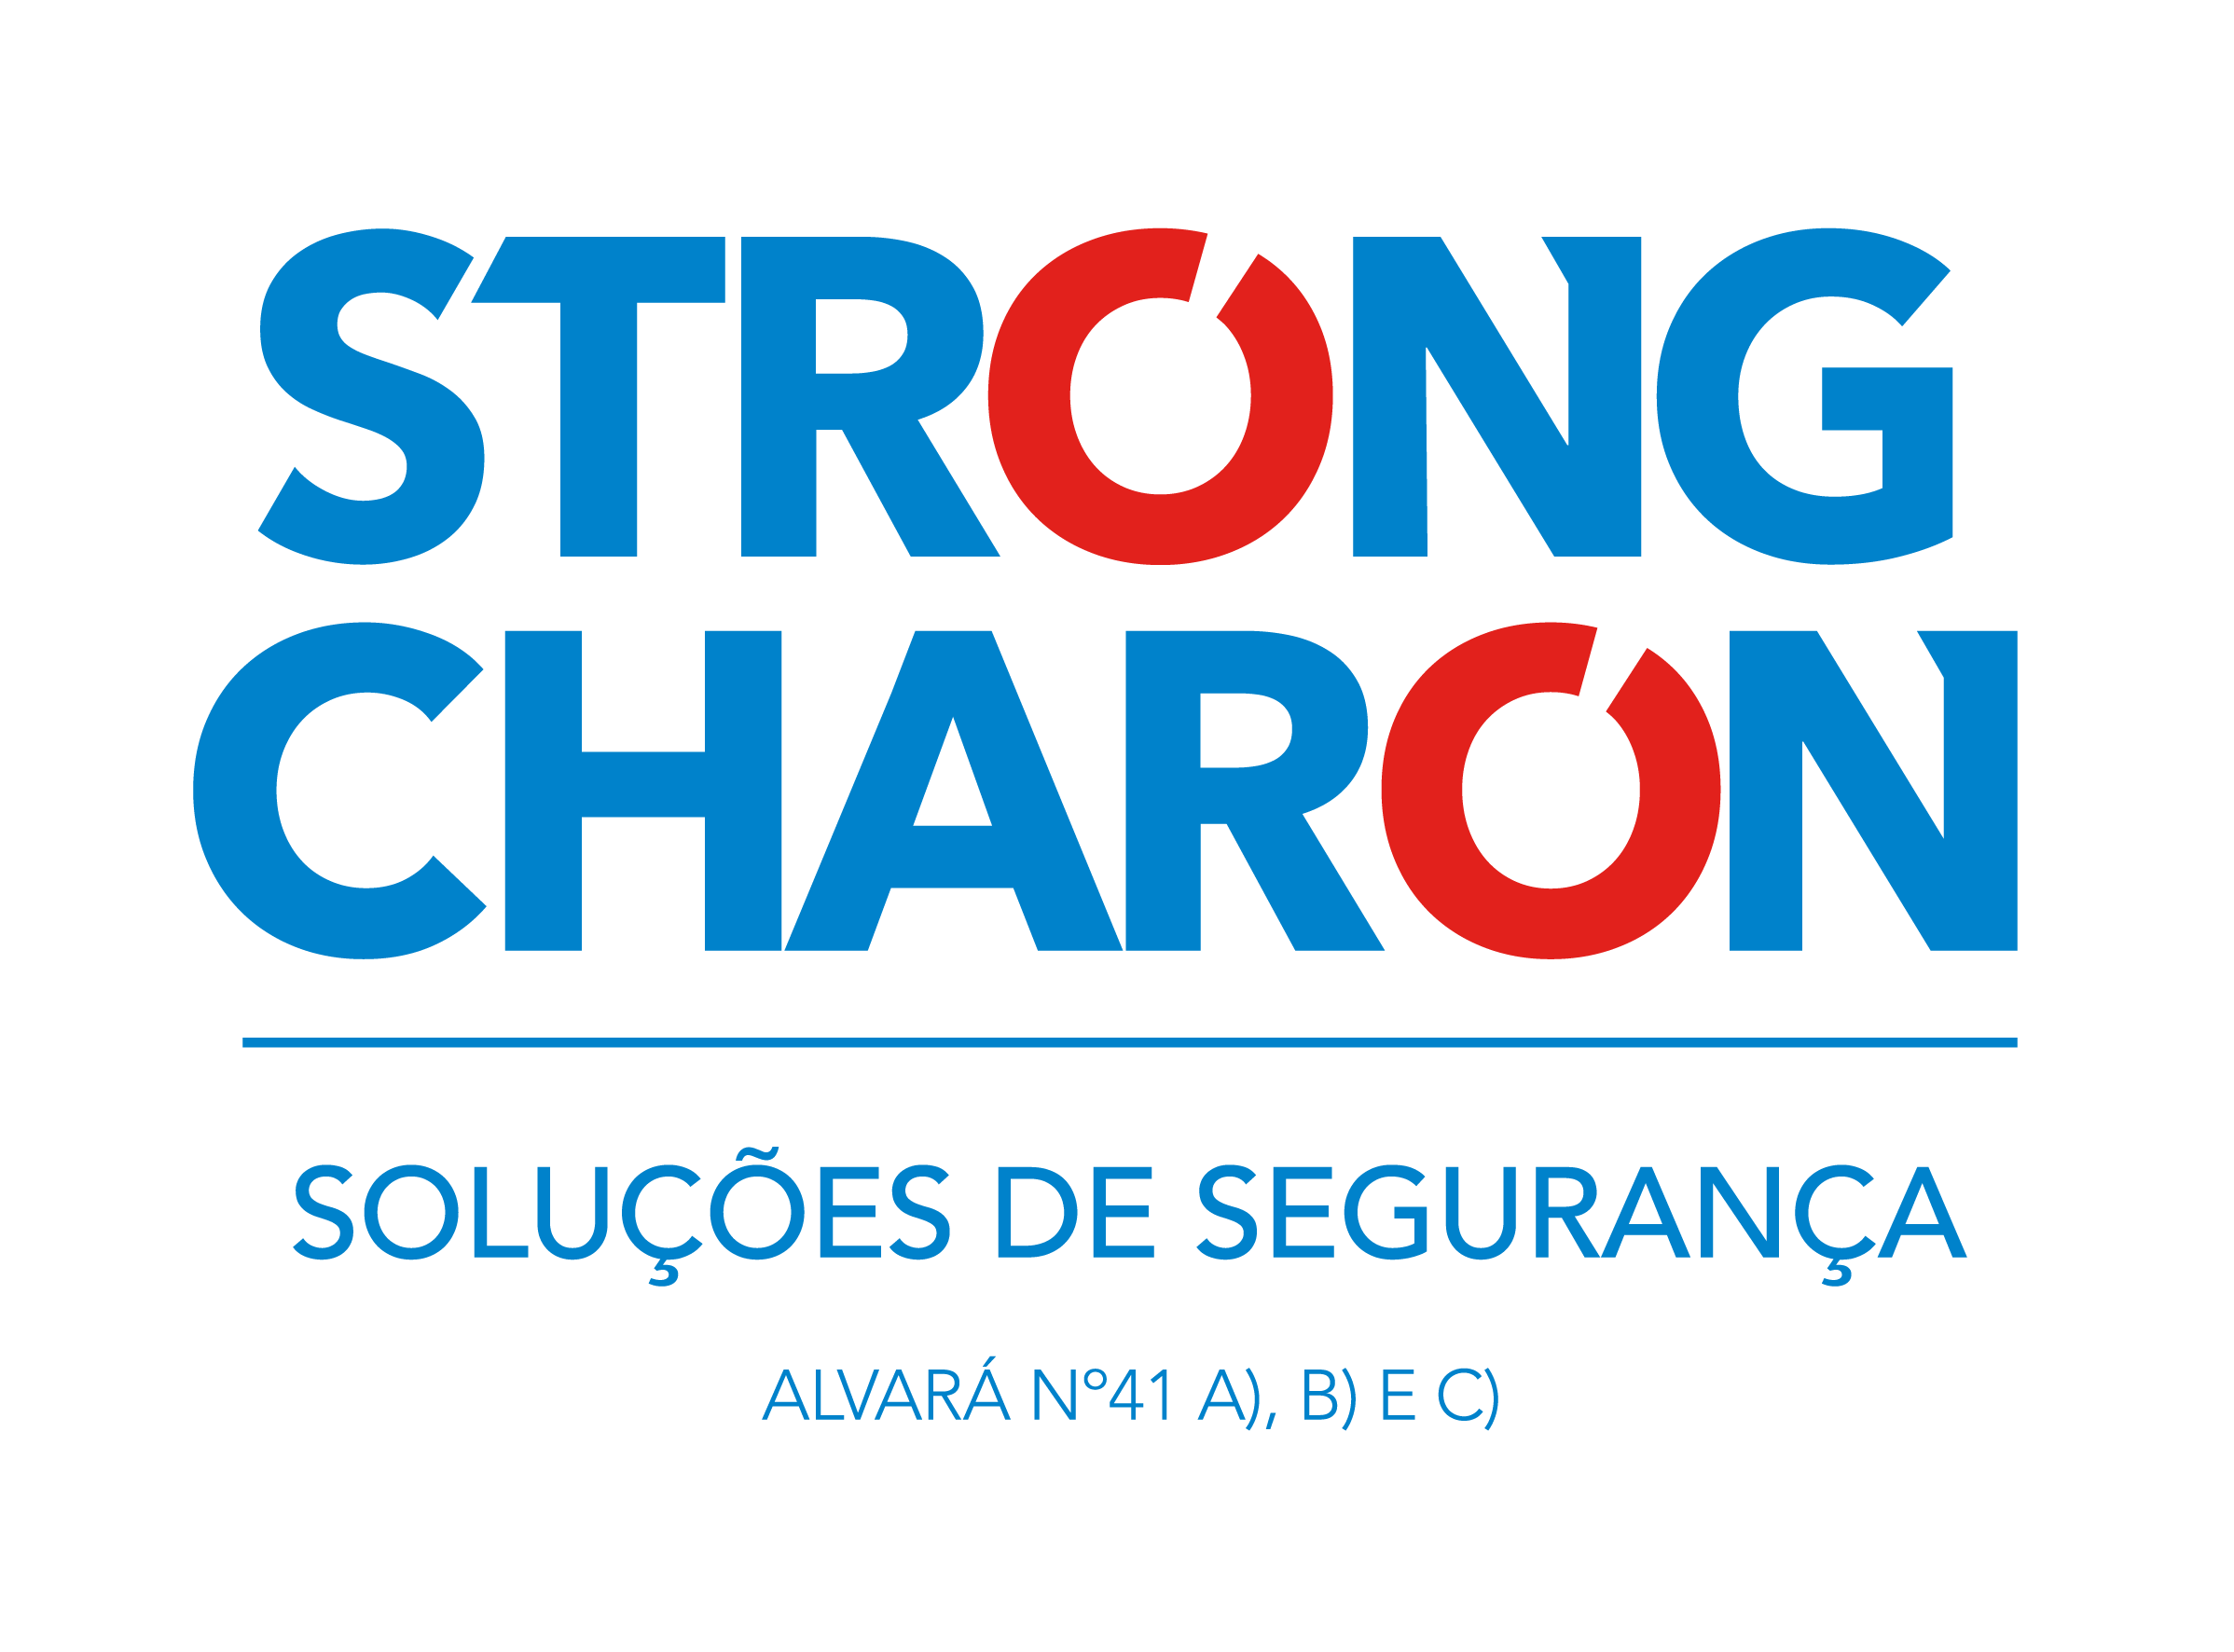 StrongCharonLogo